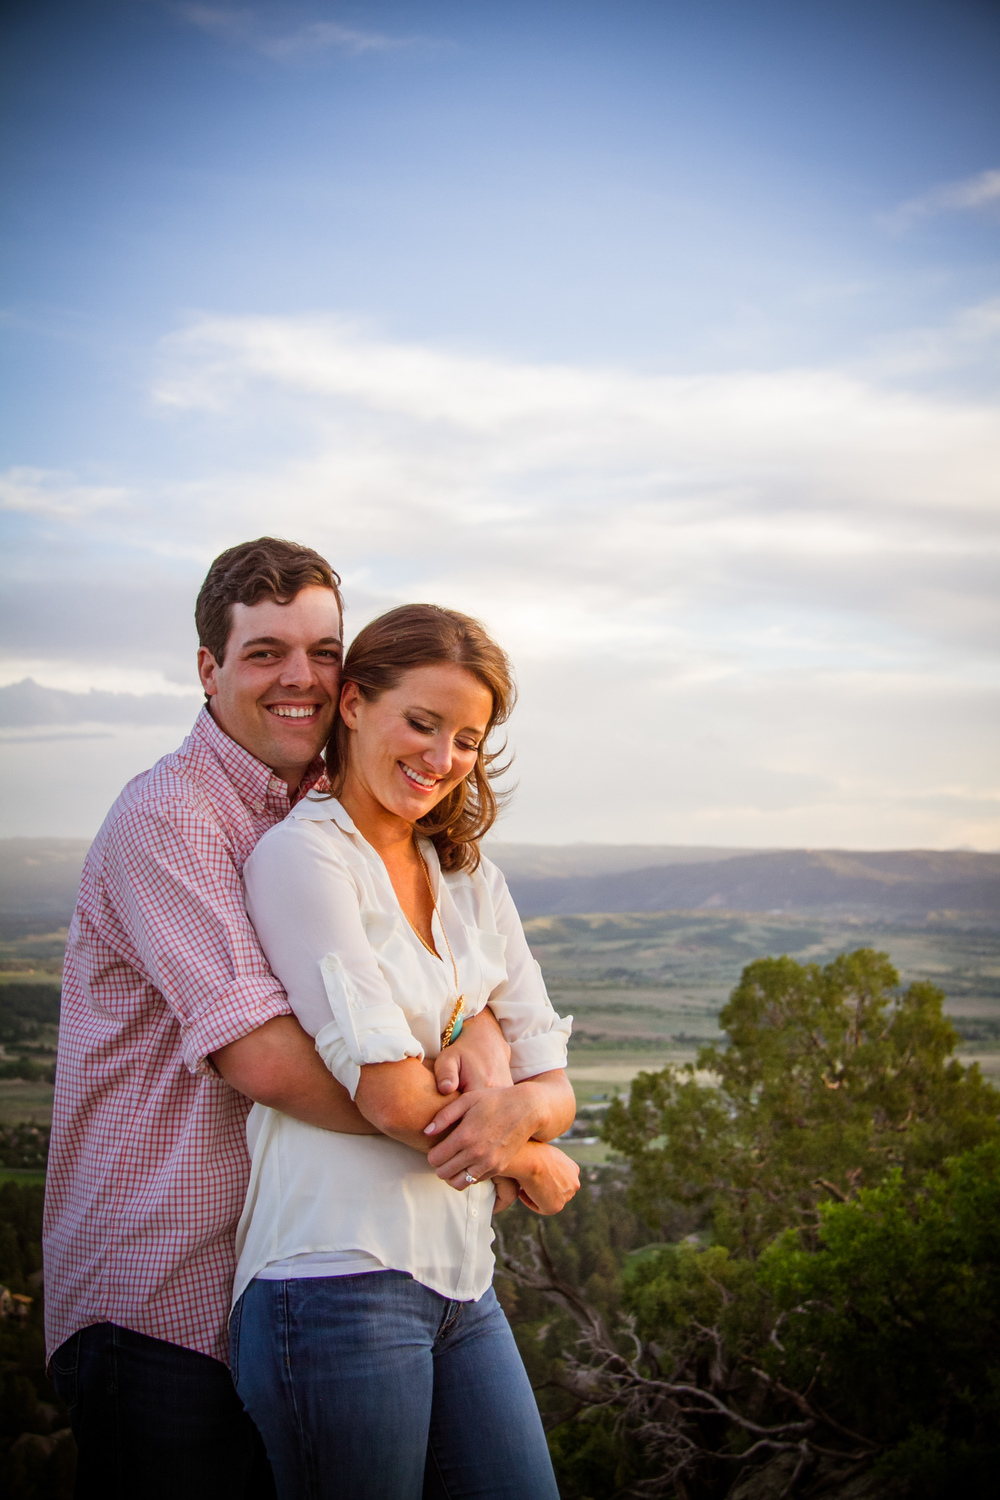 Castle_Pines_Colorado'_Engagement_Photos_018.JPG